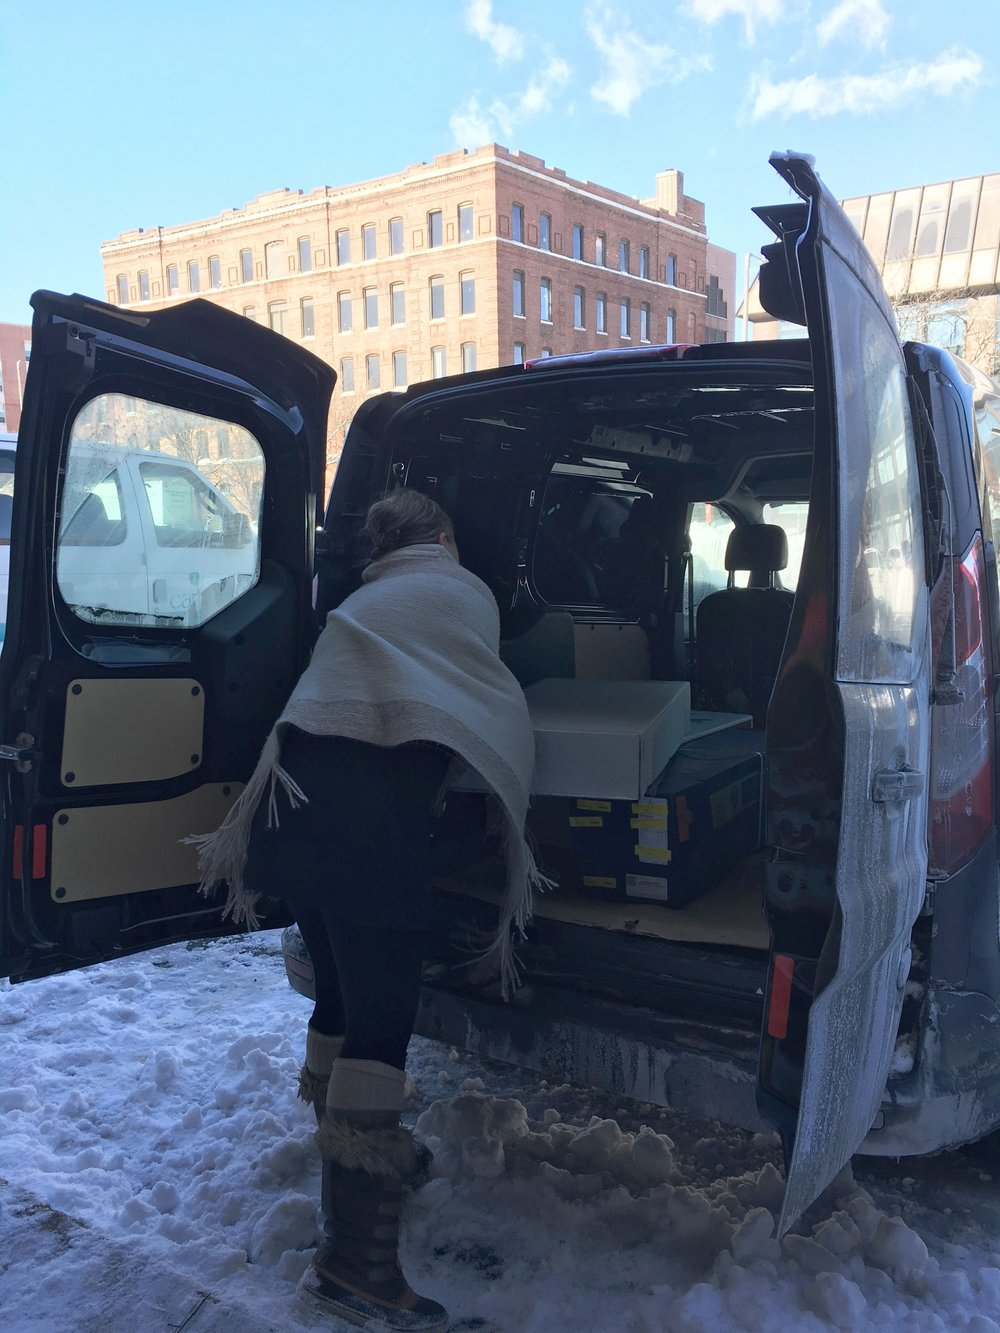 Emily Herzig loads fresh flowers into her van at the Boston Flower Exchange on a cold winter day. | Photo: Molly Donahue